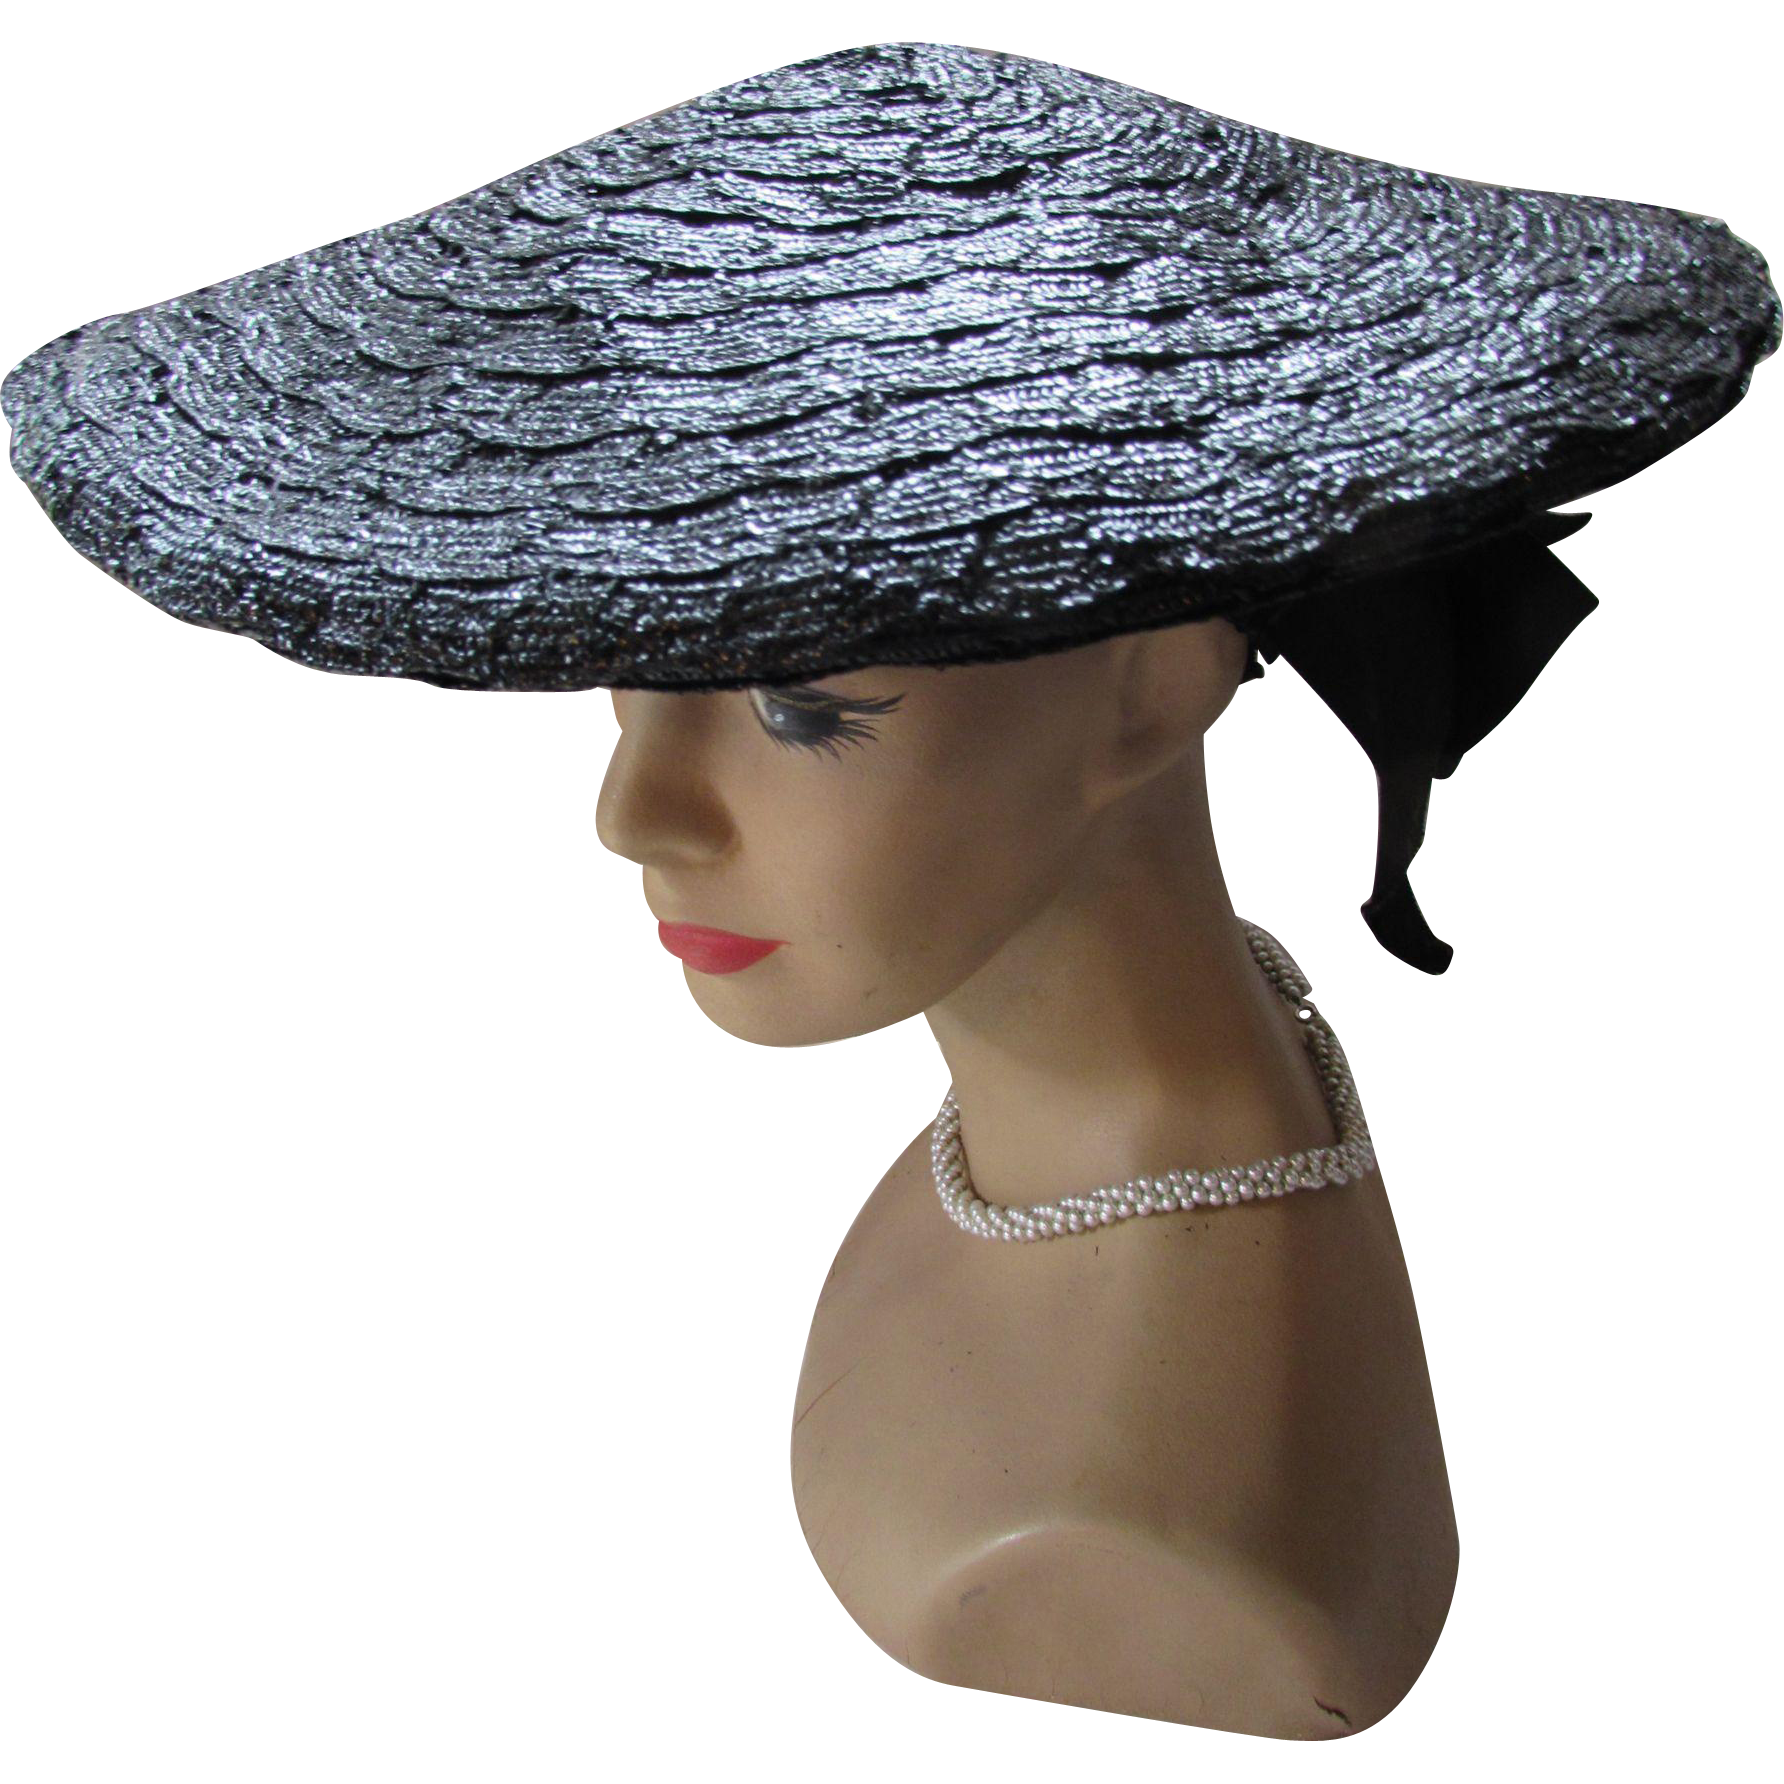 Shiny Black Pancake Hat in Straw Weave with Black Ribbon Bow by Jean Allen Styled by Gage Mid Century